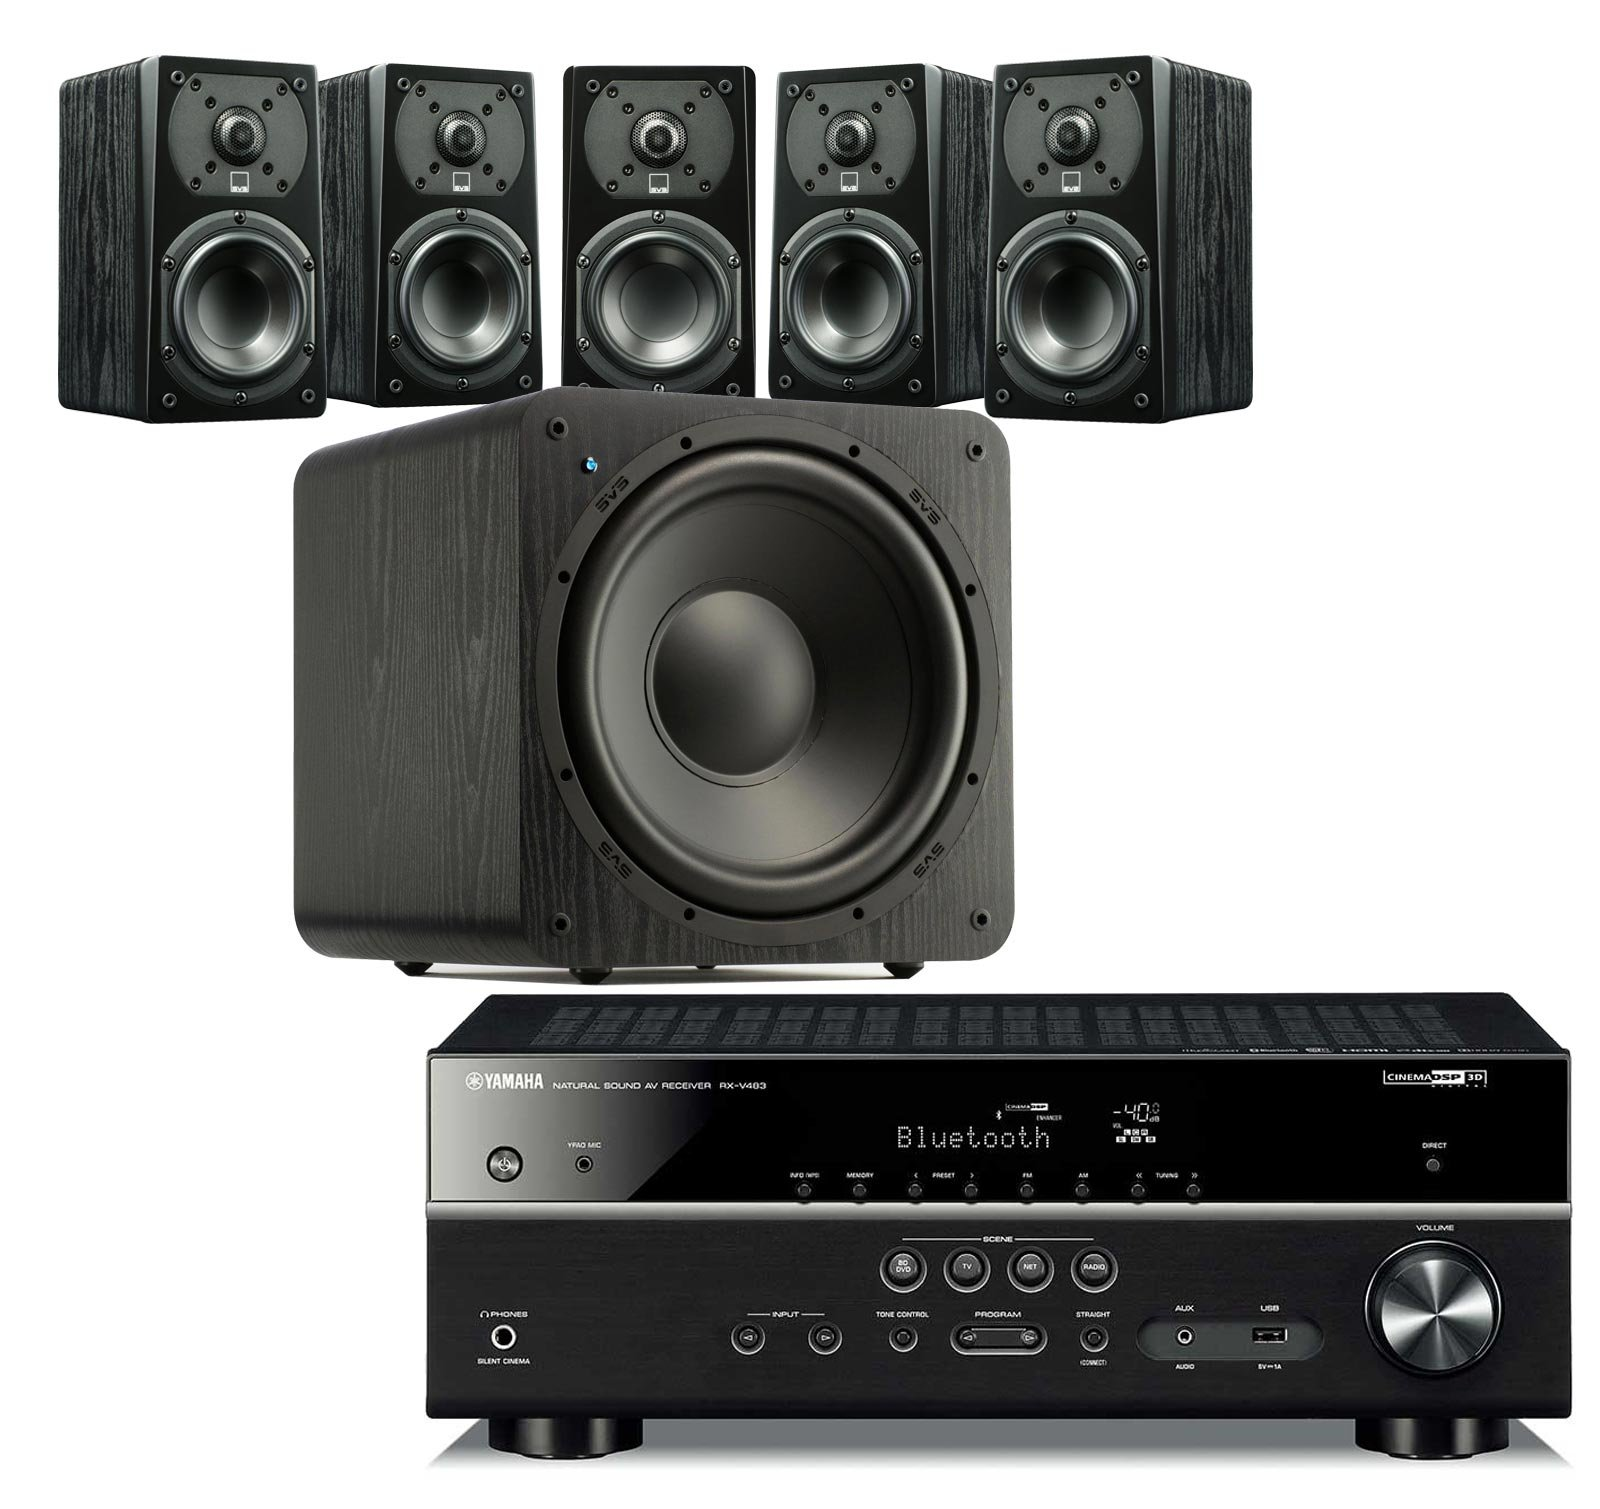 SVS Home Theater Prime Satellite 5.1 Package Featuring 5 Prime Wired Satellite Speakers, SB–1000 Wired Subwoofer (Black Ash), and Yamaha RX-V483BL 5.1-Channel 4K Ultra HD AV Receiver with Bluetooth by SVS